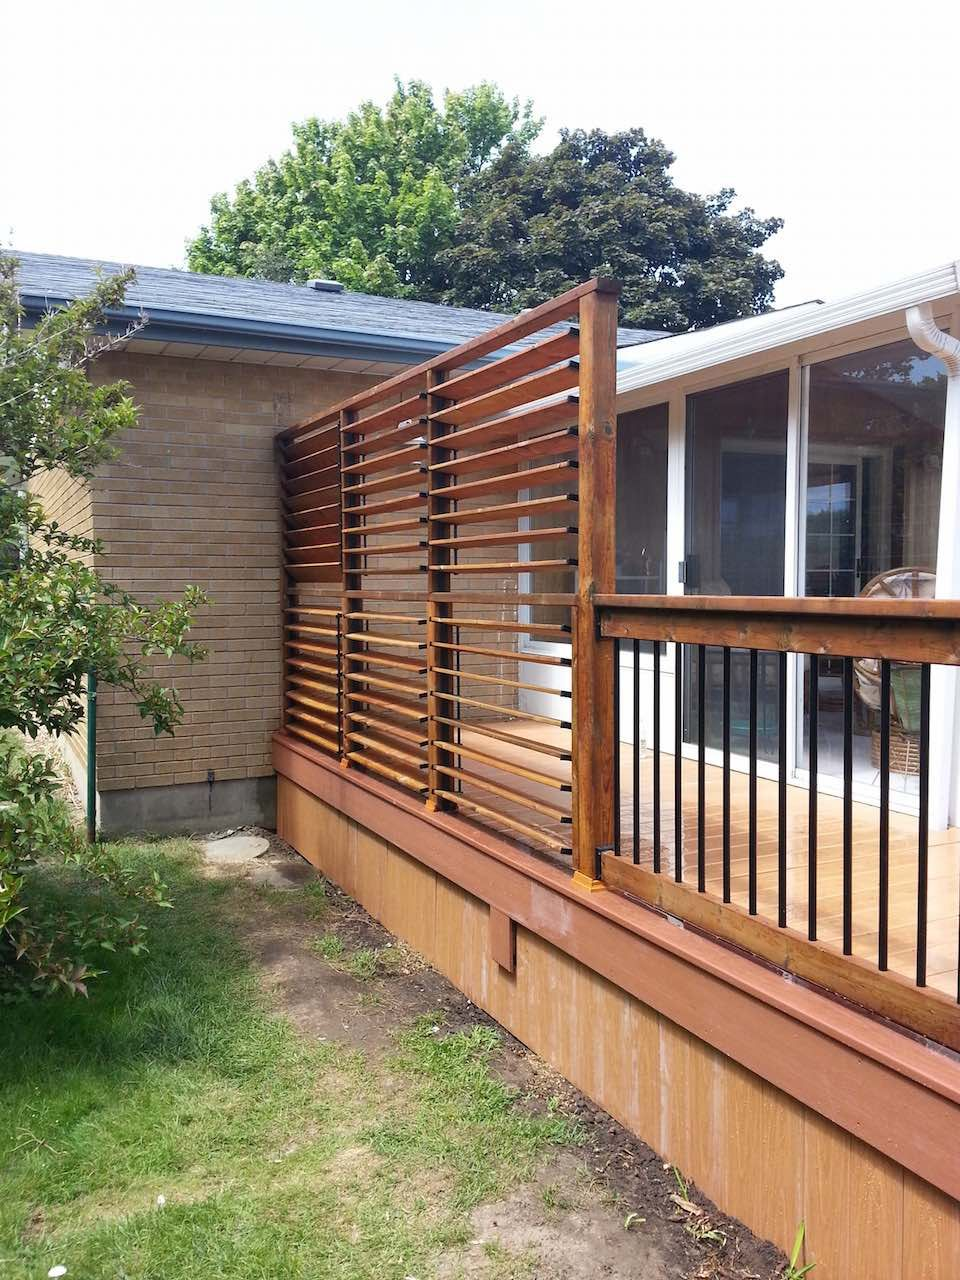 Backyard privacy screen louvers great solution by flex for Wood patio privacy screens